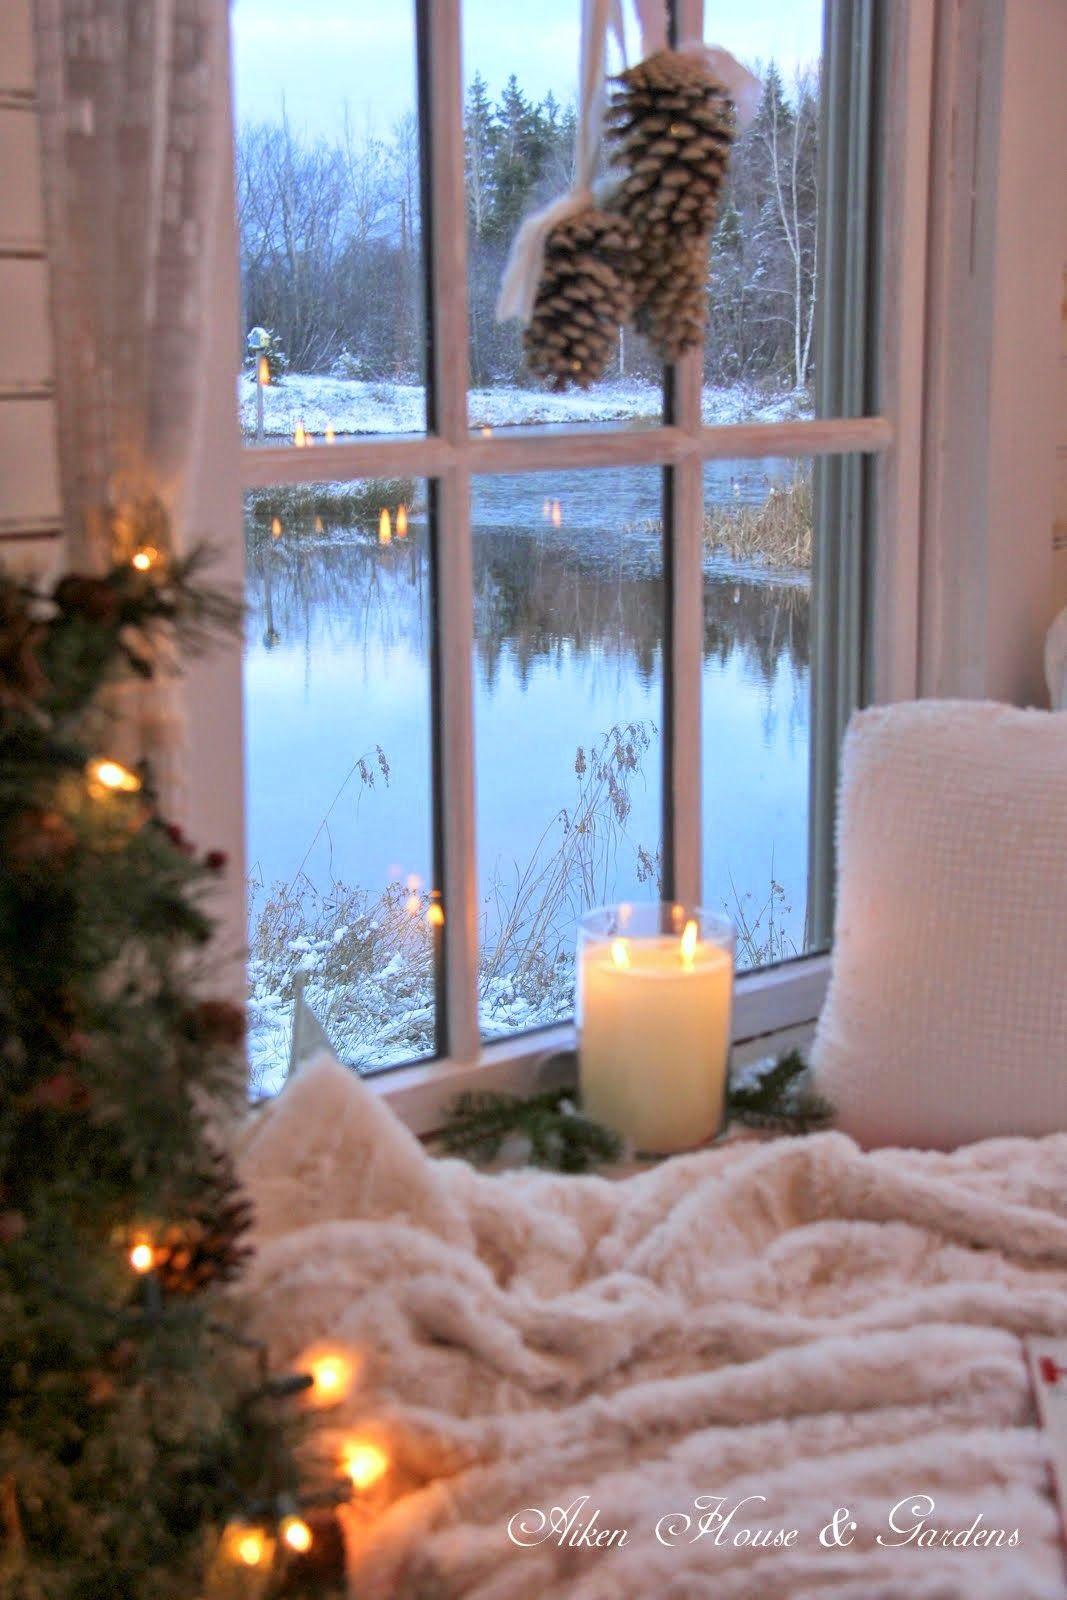 This is not my home but I love how cozy it looks.